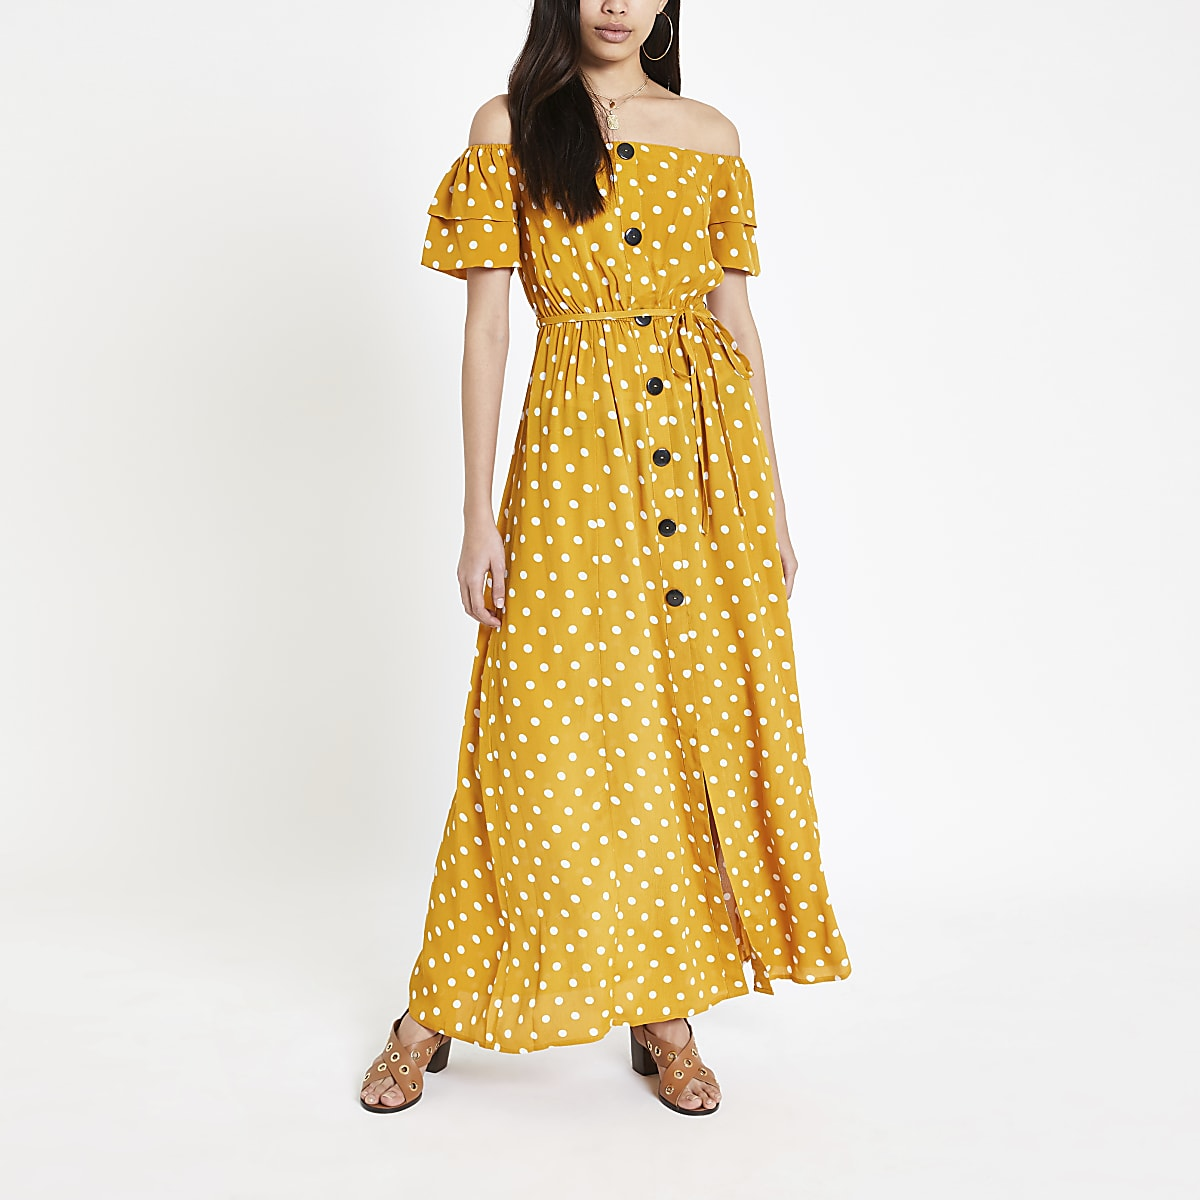 83a18127acf4 Yellow spot bardot button through maxi dress - Maxi Dresses ...